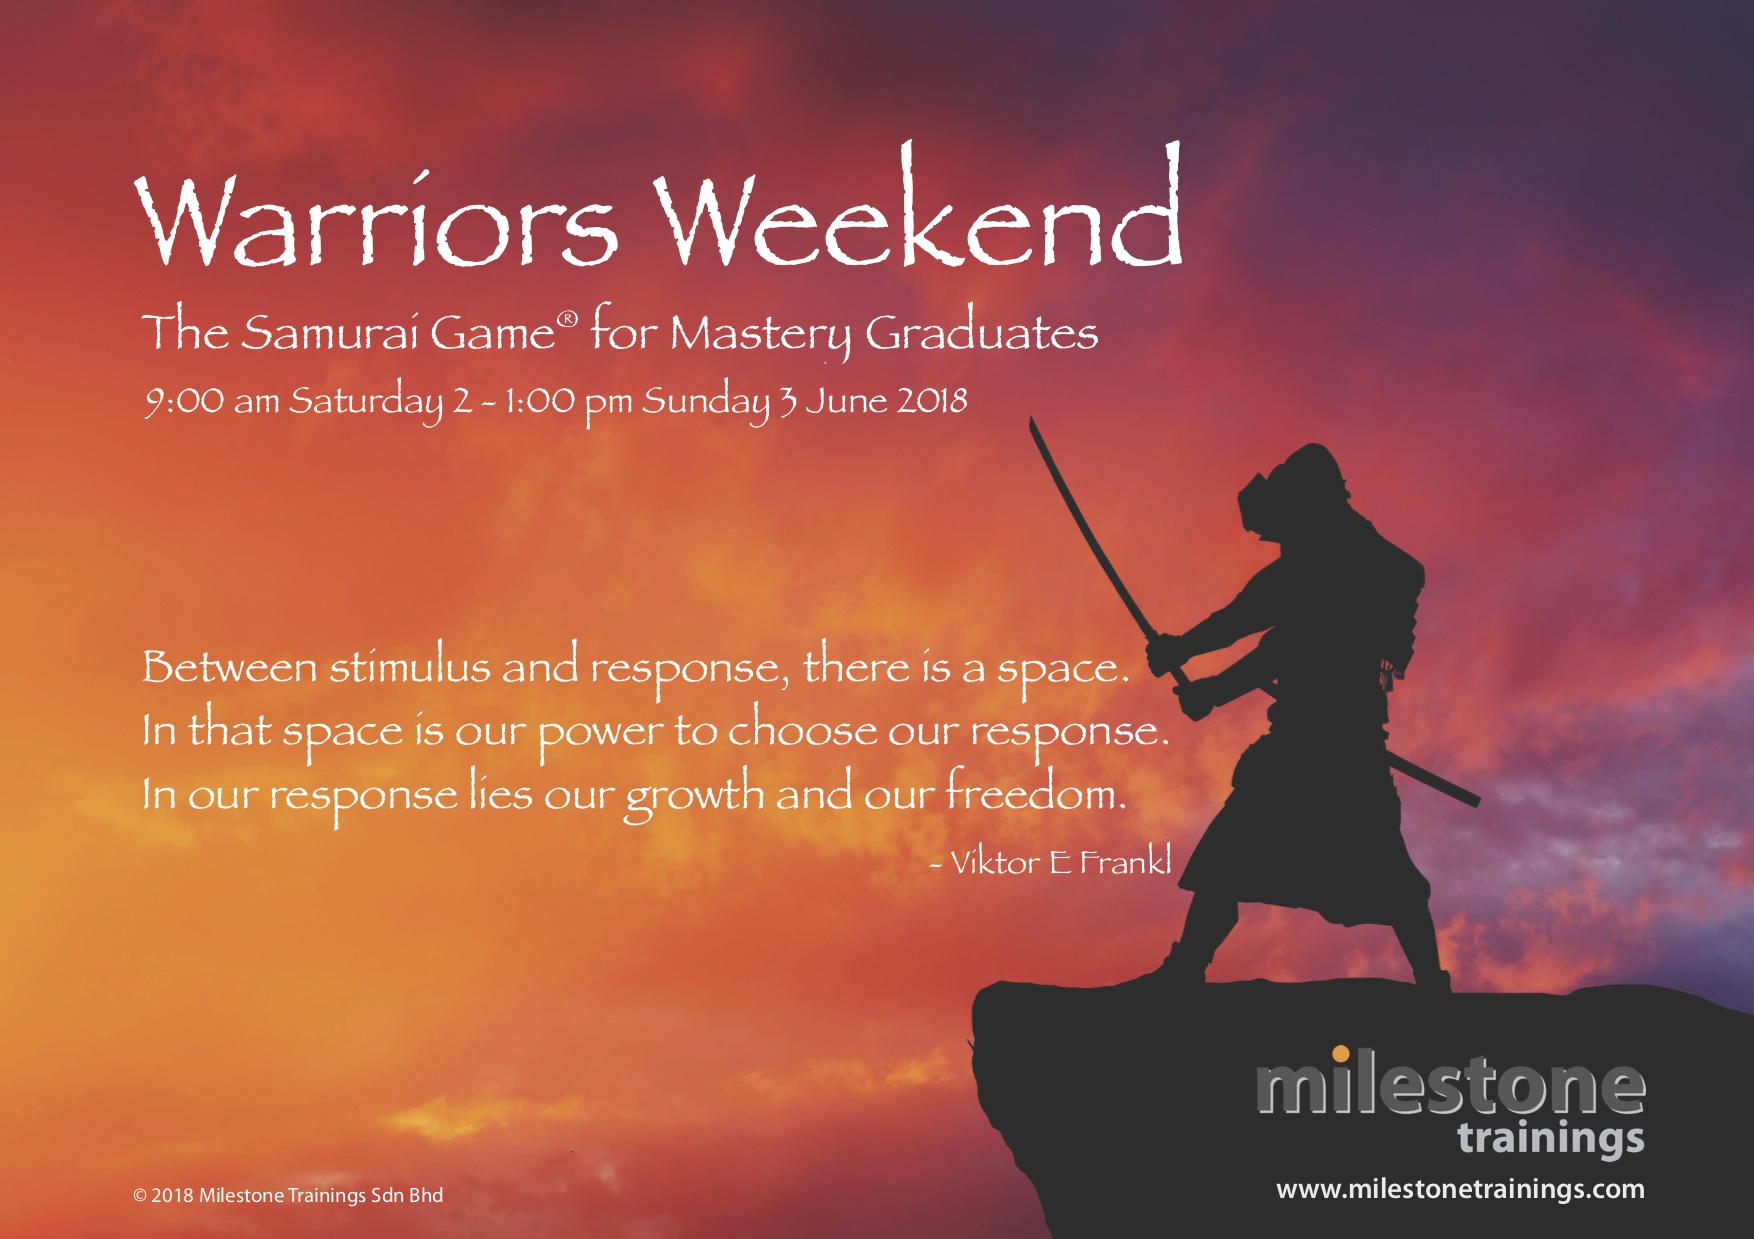 Warriors Weekend -- The Samurai Game for Mastery Graduates